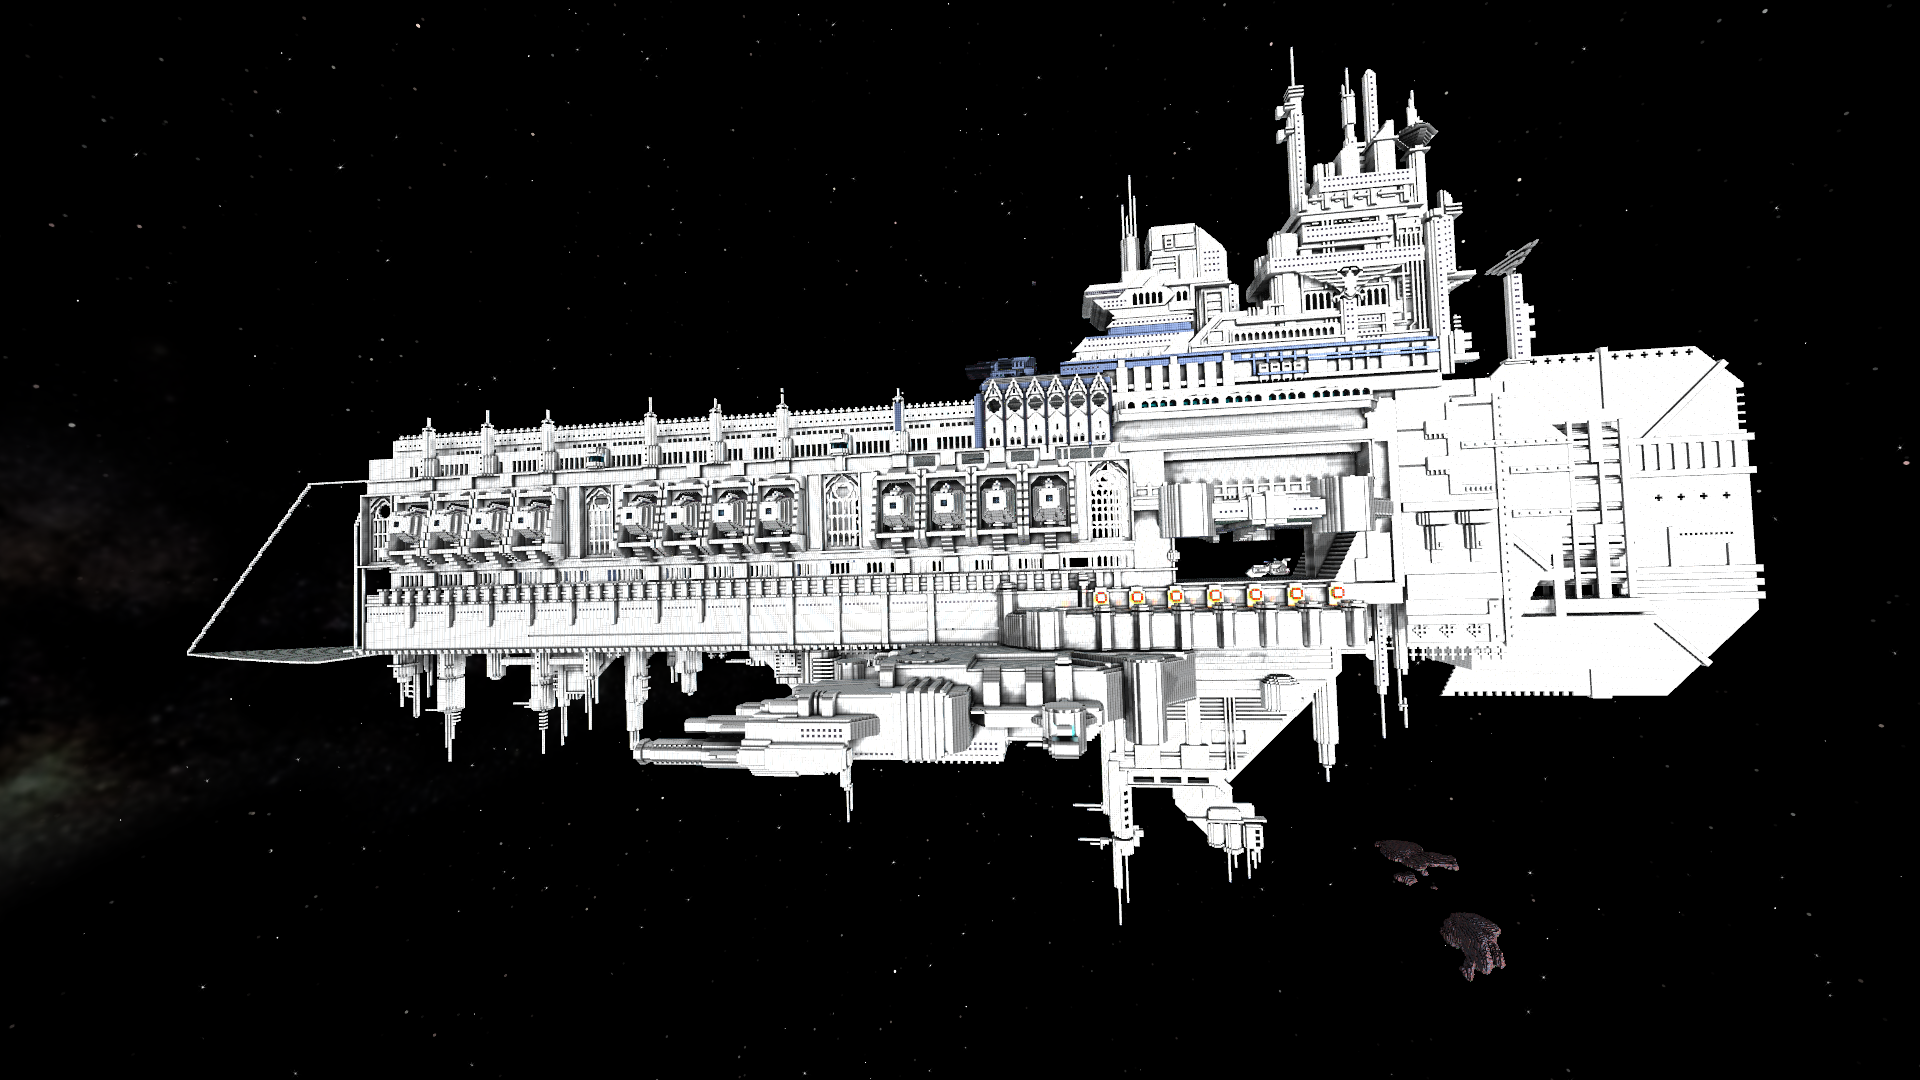 space ship on starmade - photo #35